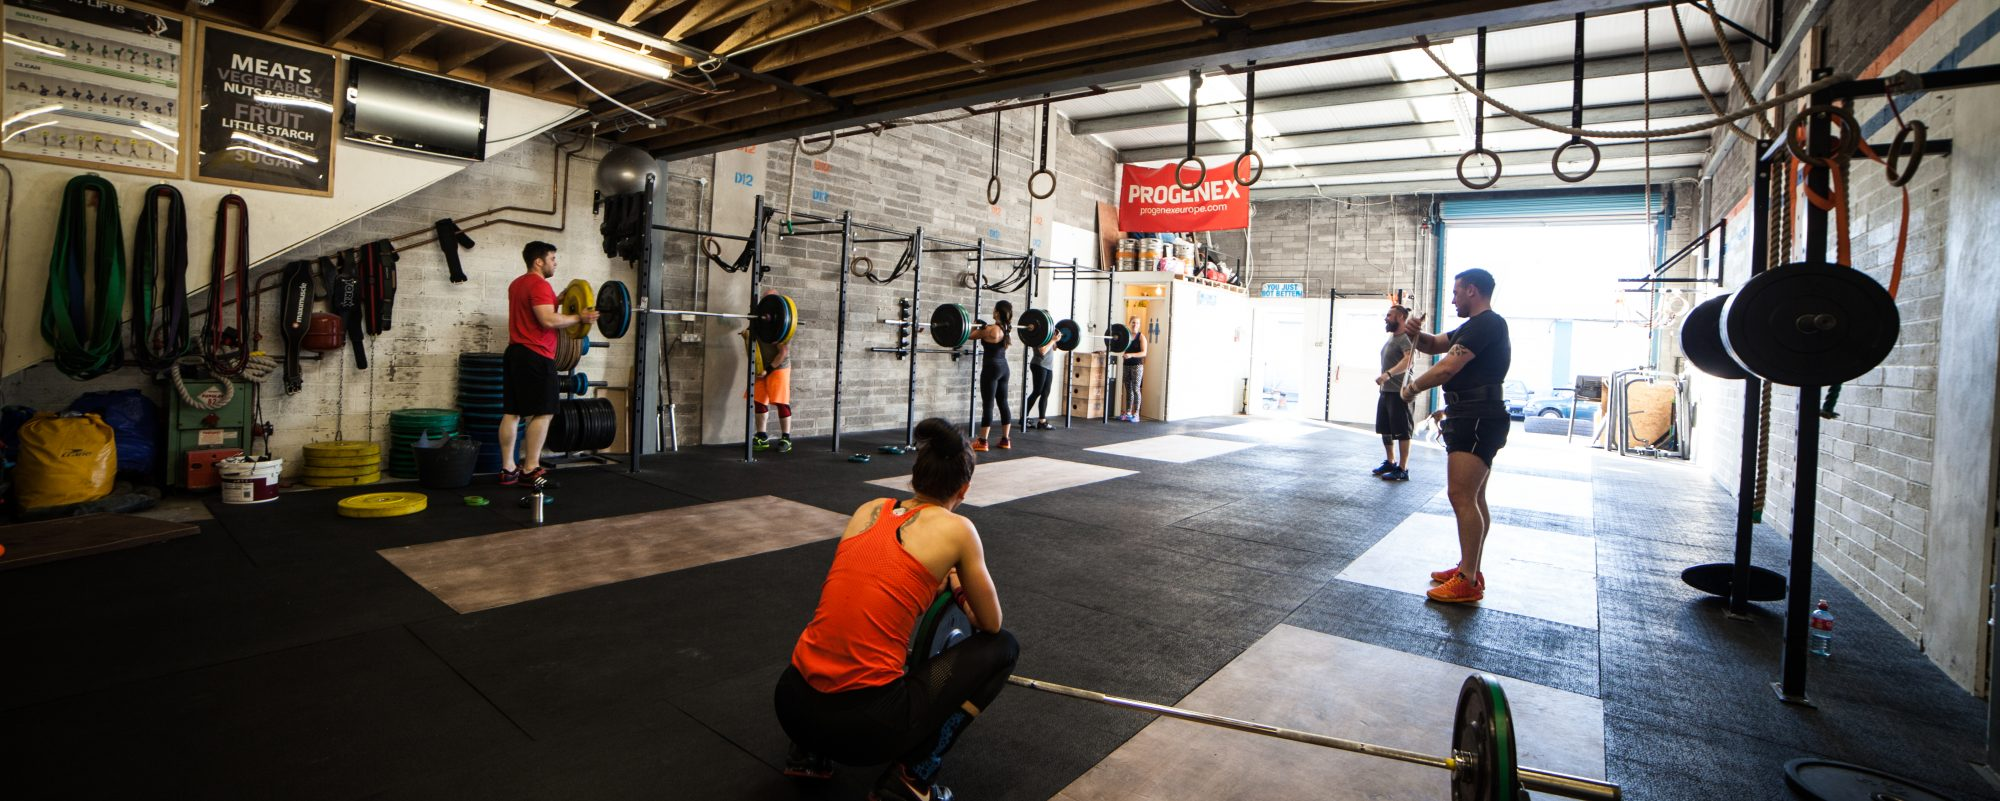 Wod D12 Crossfit Training Workouts For Beginners